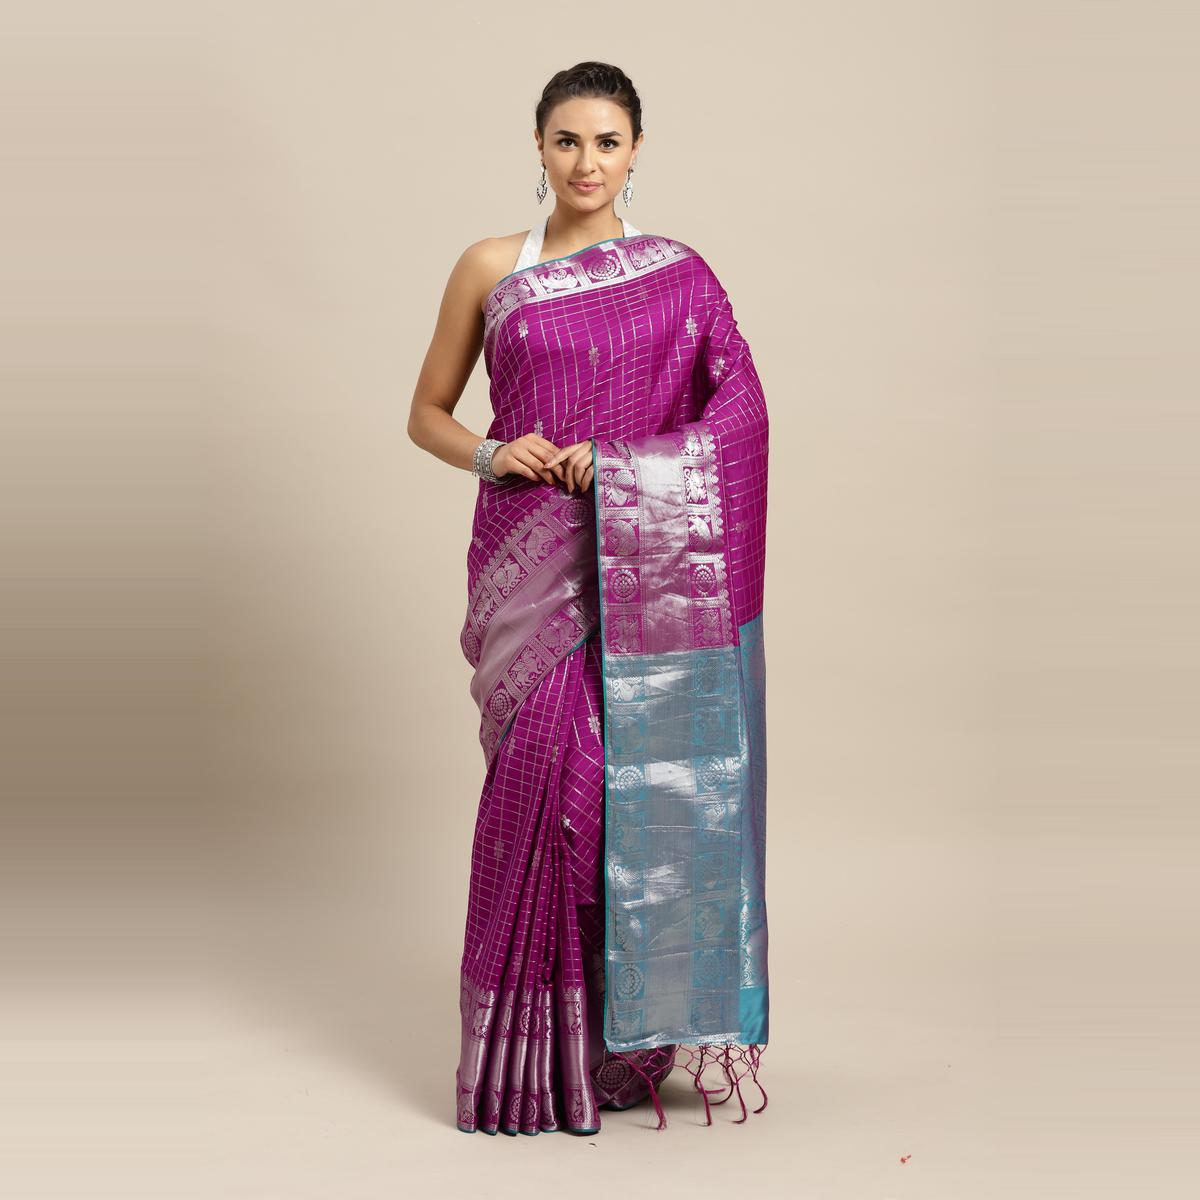 Stylee Lifestyle - Violet Colored Festive Wear Woven Banarasi Silk Saree With Tassels